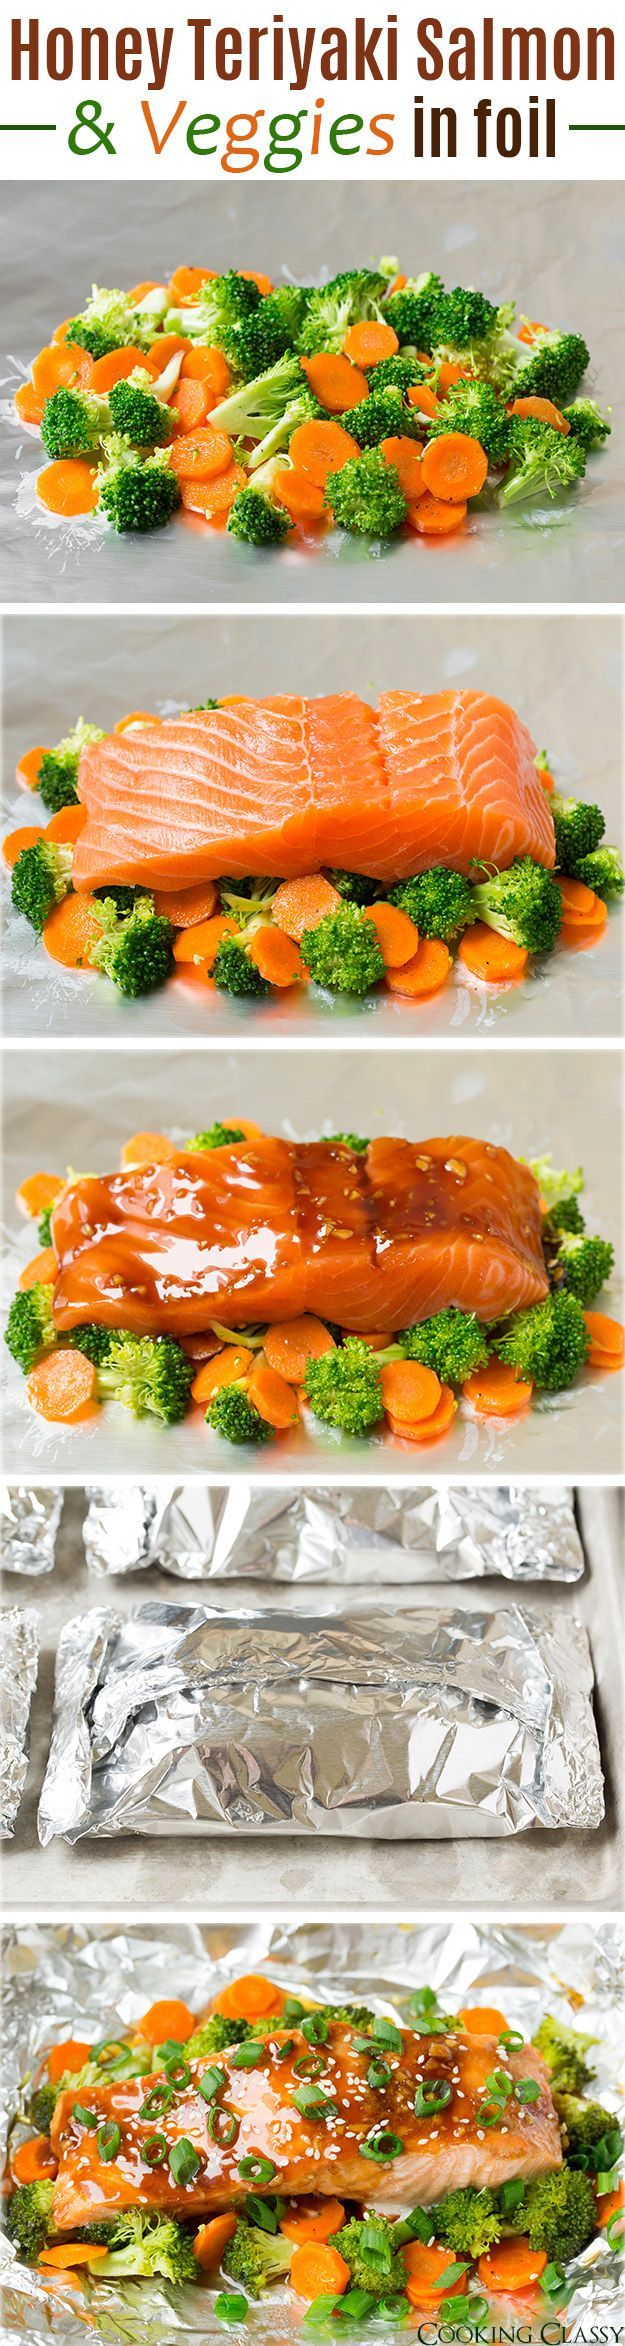 clearance coats women Honey Teriyaki Salmon and Veggies in Foil   an easy dinner the whole family will love  Youve got to try this salmon  its so delicious     http   realresultsin3weeks info